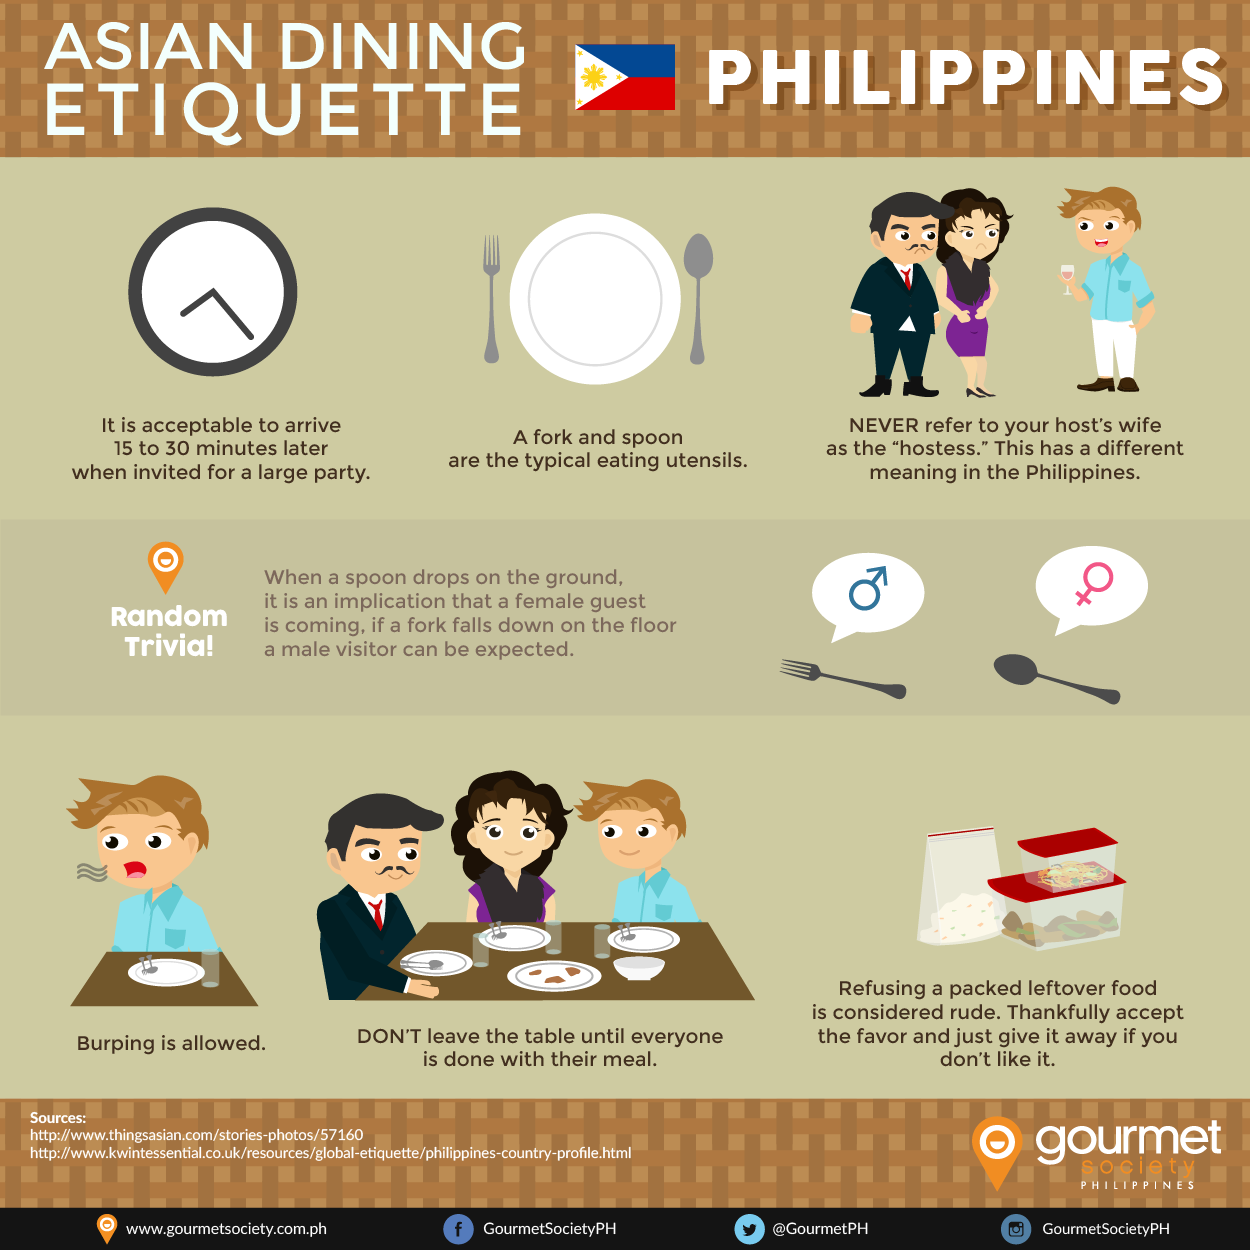 Filipino Dining Etiquette: A Short Primer